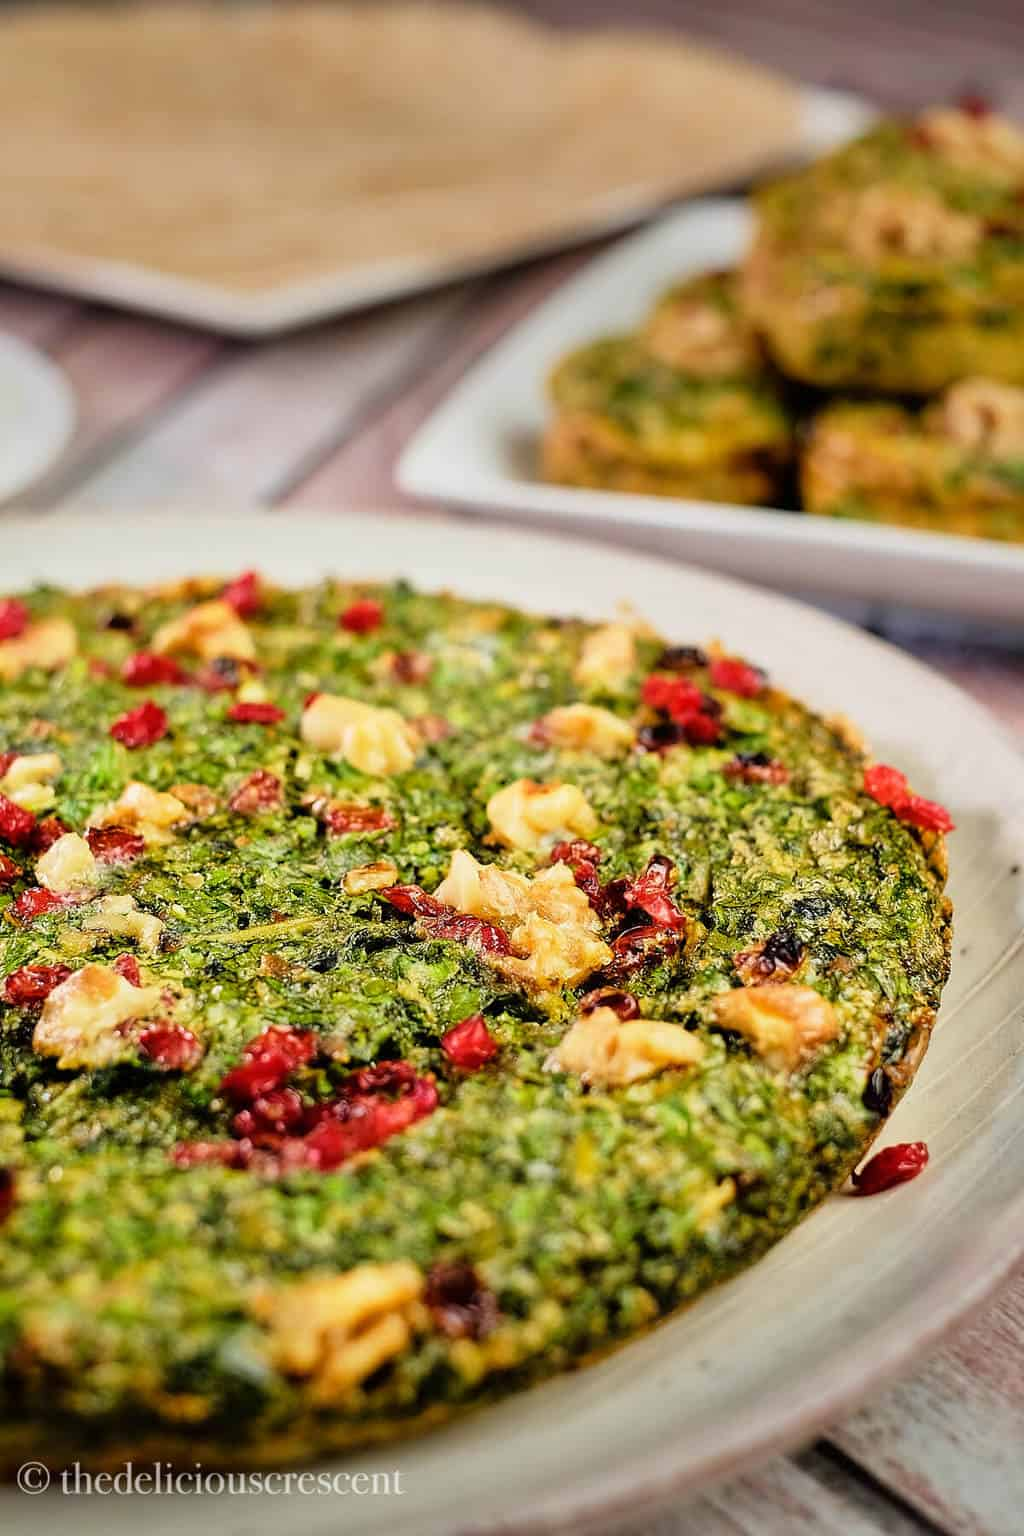 Persian herb frittata served on a plate and placed on a table.